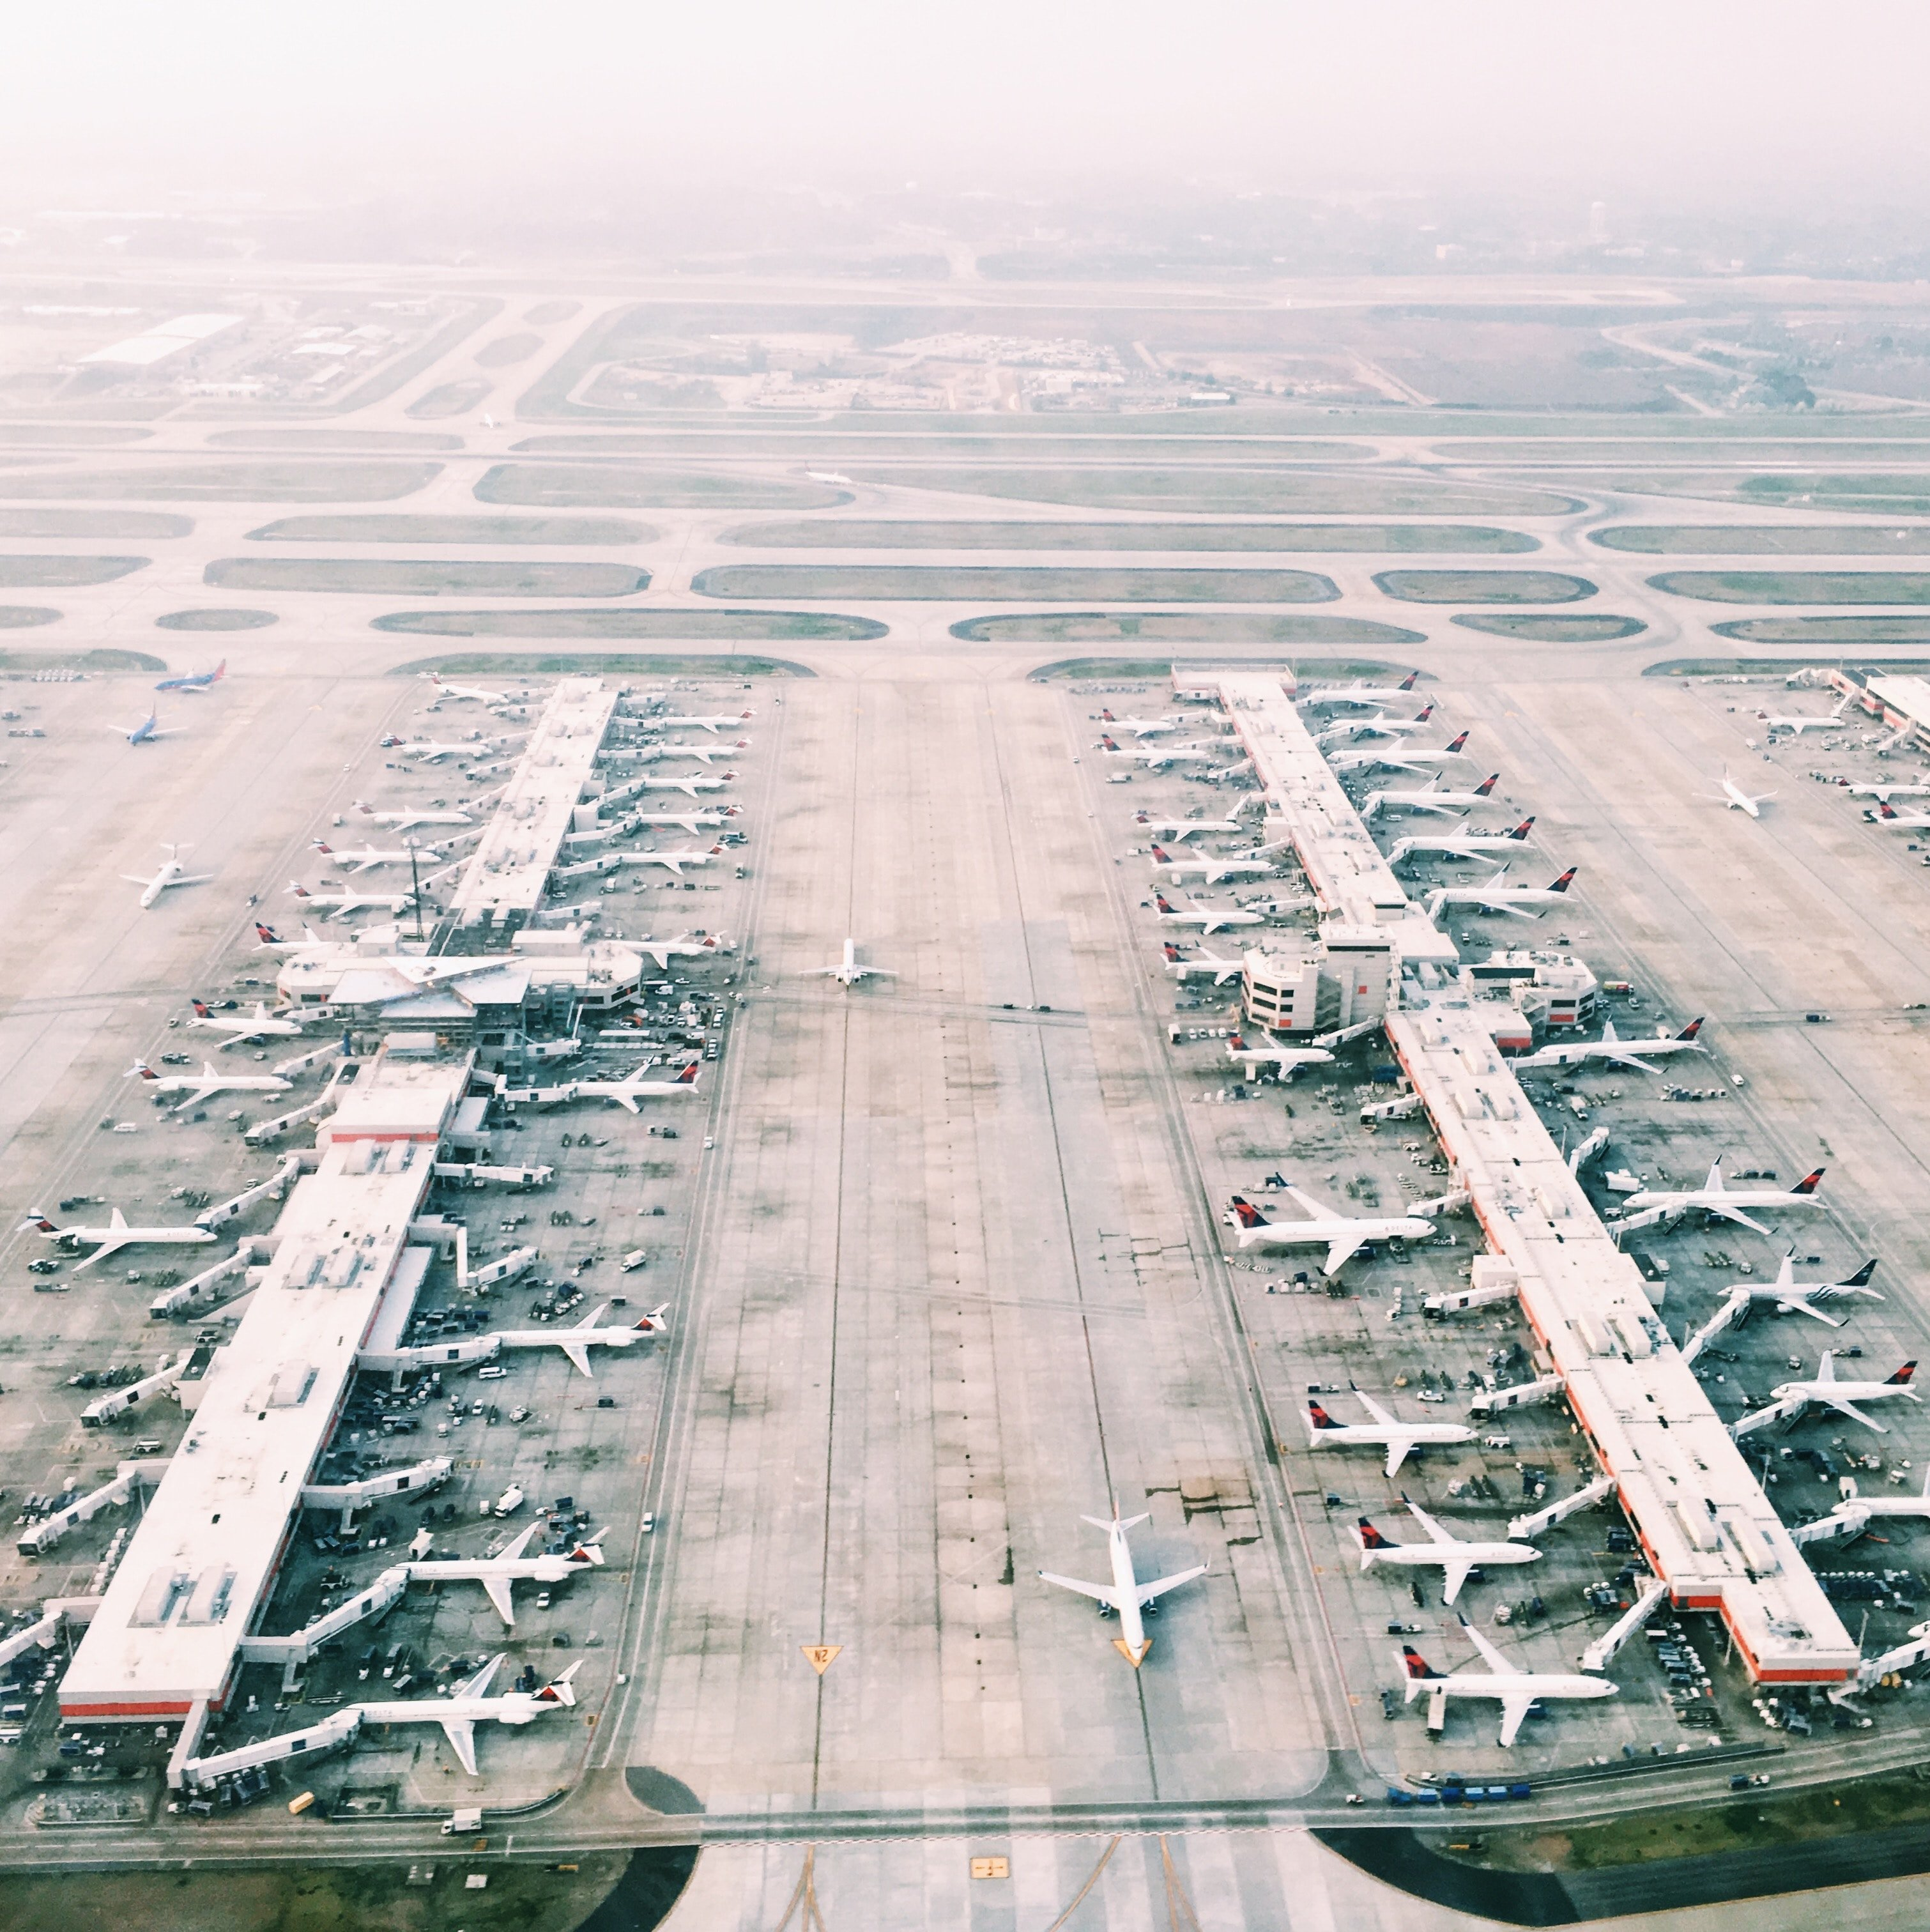 An arial view of an airport | Source: Unsplash.com